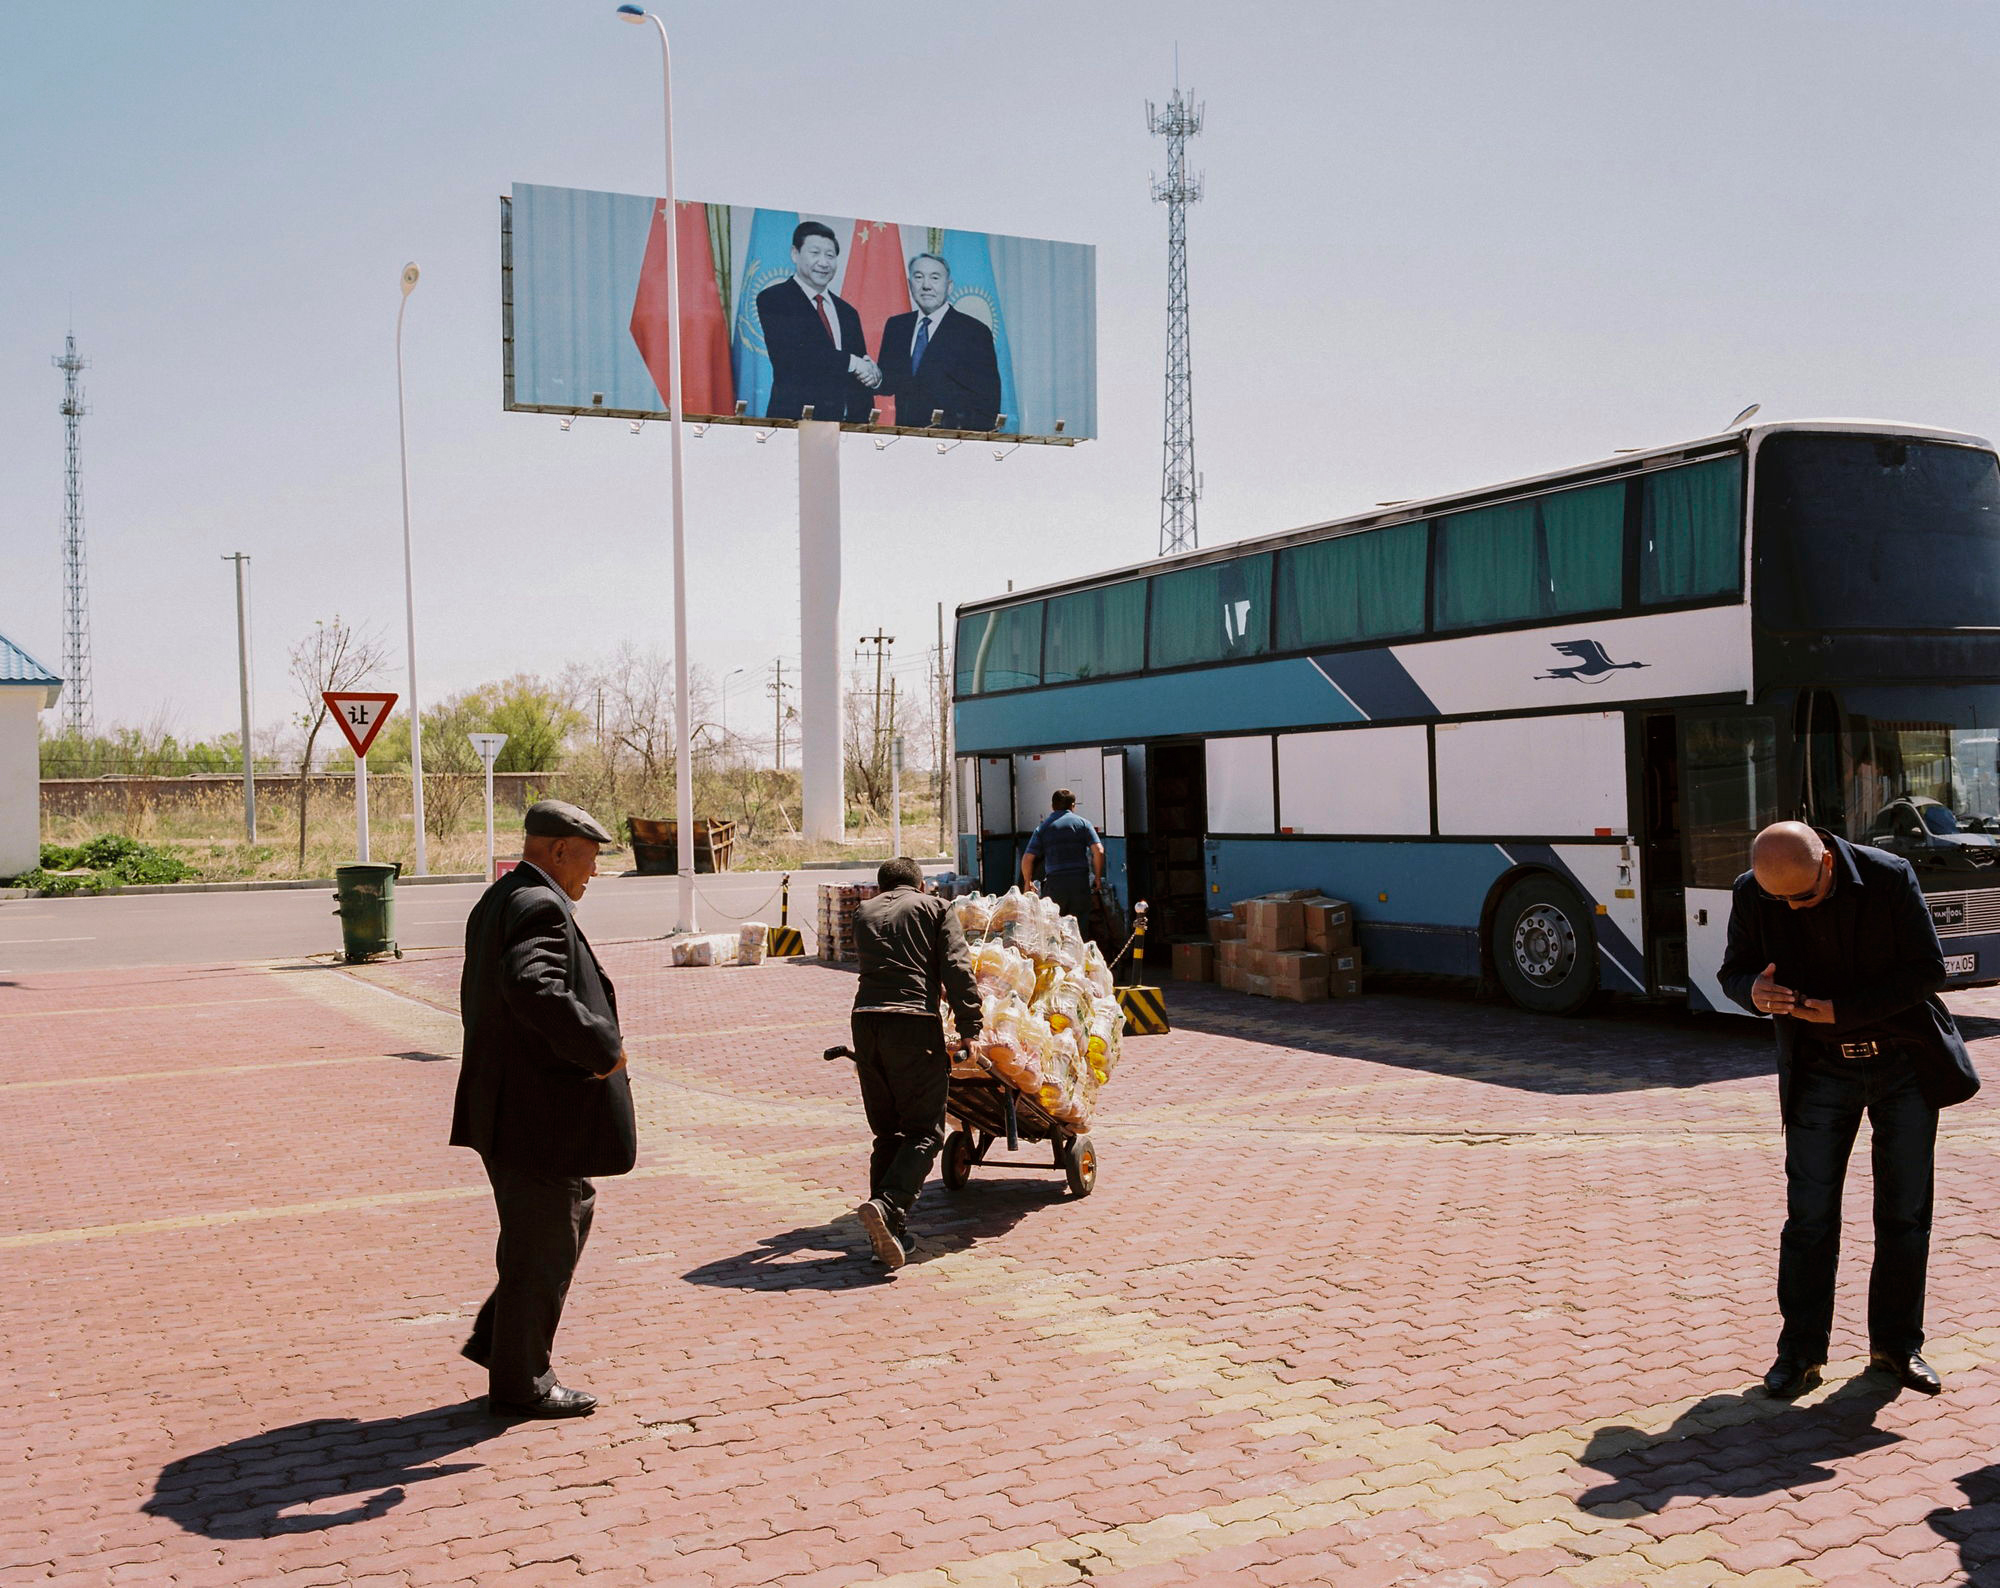 A border-control point between China and Kazakhstan near the city of Tacheng in the province of Xinjiang in May 2017.